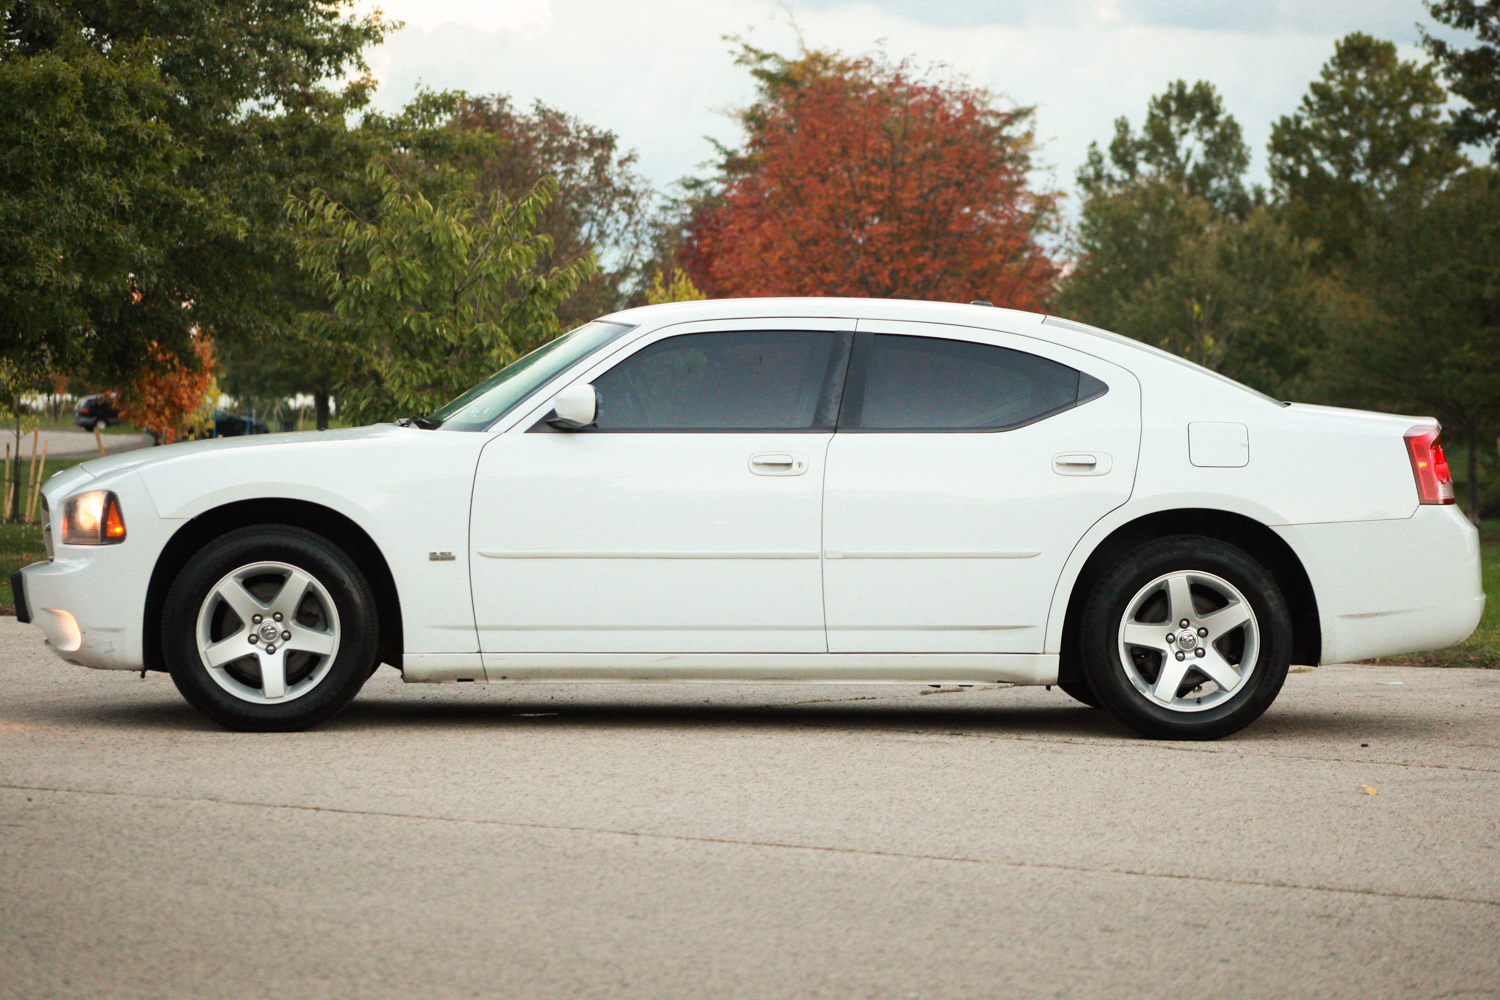 2010 dodge charger sxt carfax certified aux. Black Bedroom Furniture Sets. Home Design Ideas